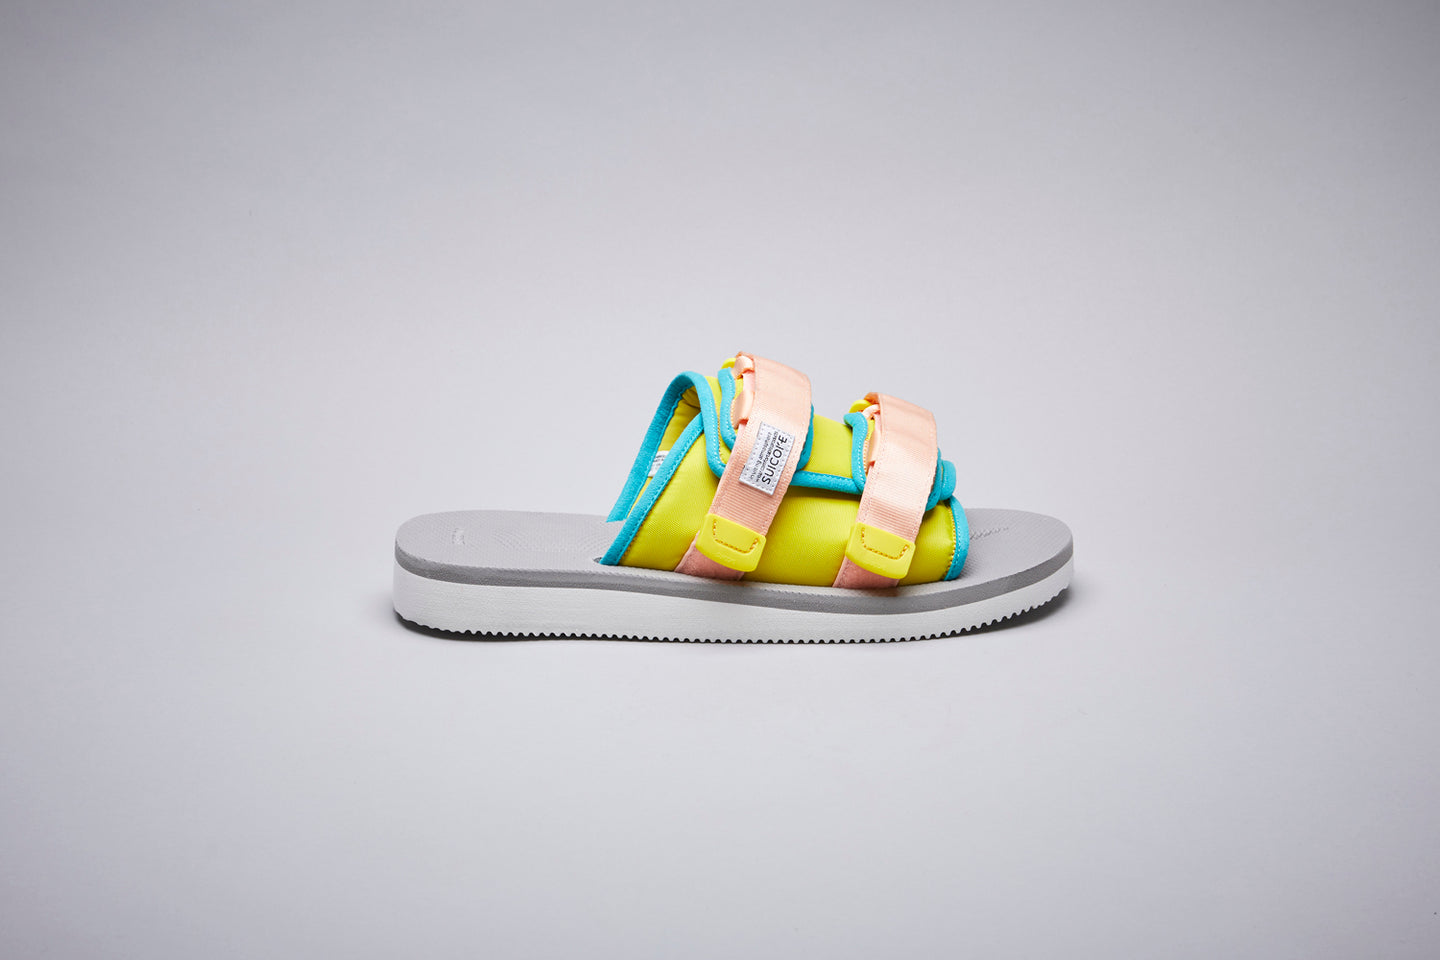 SUICOKE-Sandals-MOTO-CAB - Yellow/Gray-OG-056CABOfficial Webstore Spring 2021